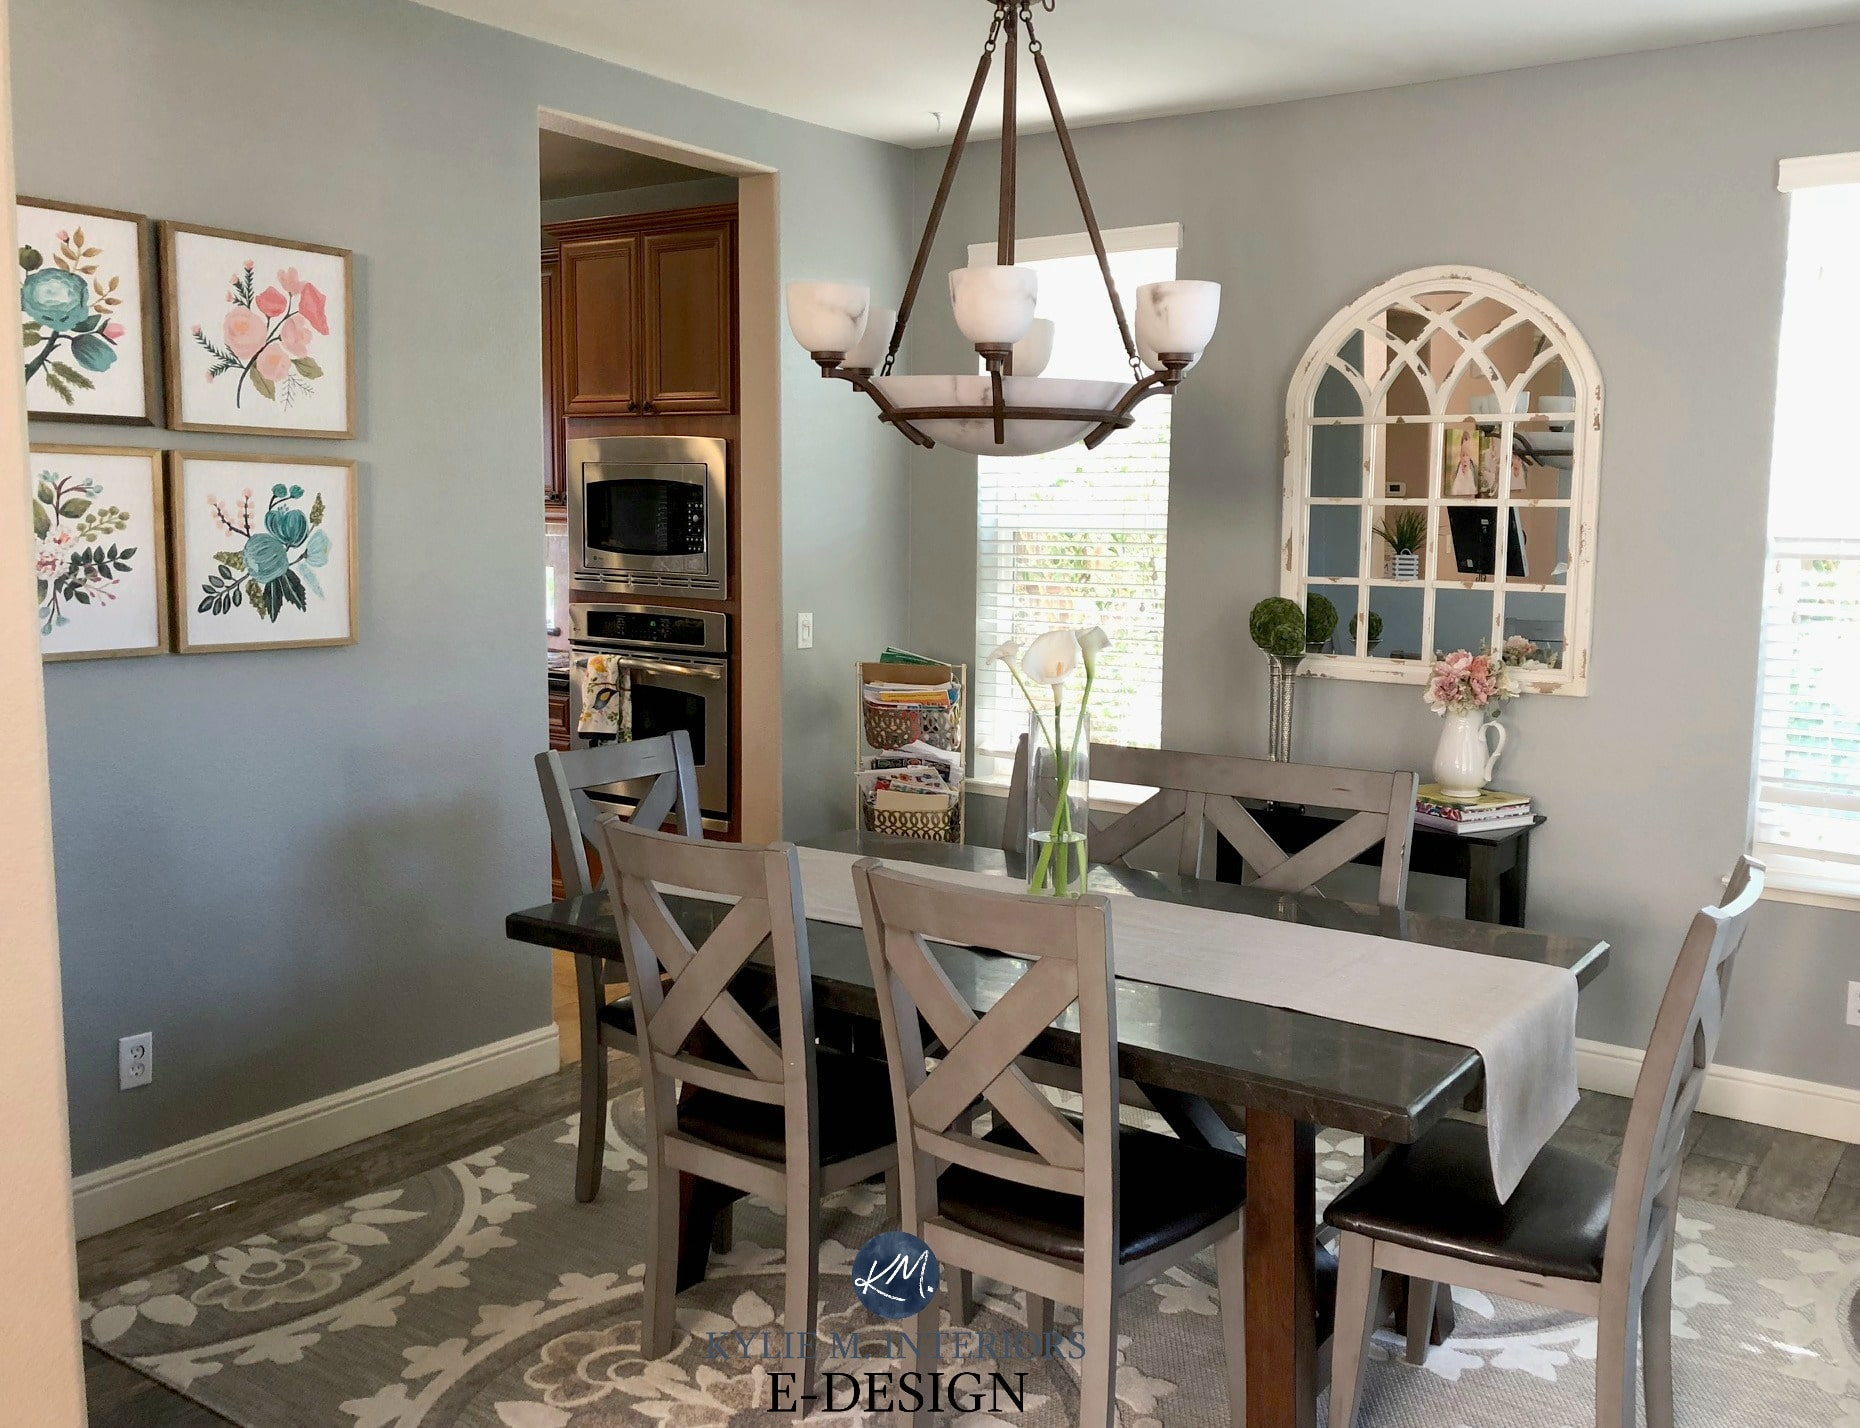 Sherwin Williams Ellie Gray, Best Gray Paint Colour With Undertones In  Dining Room. Kylie M Interiors E Design, Online Paint Color Consulting